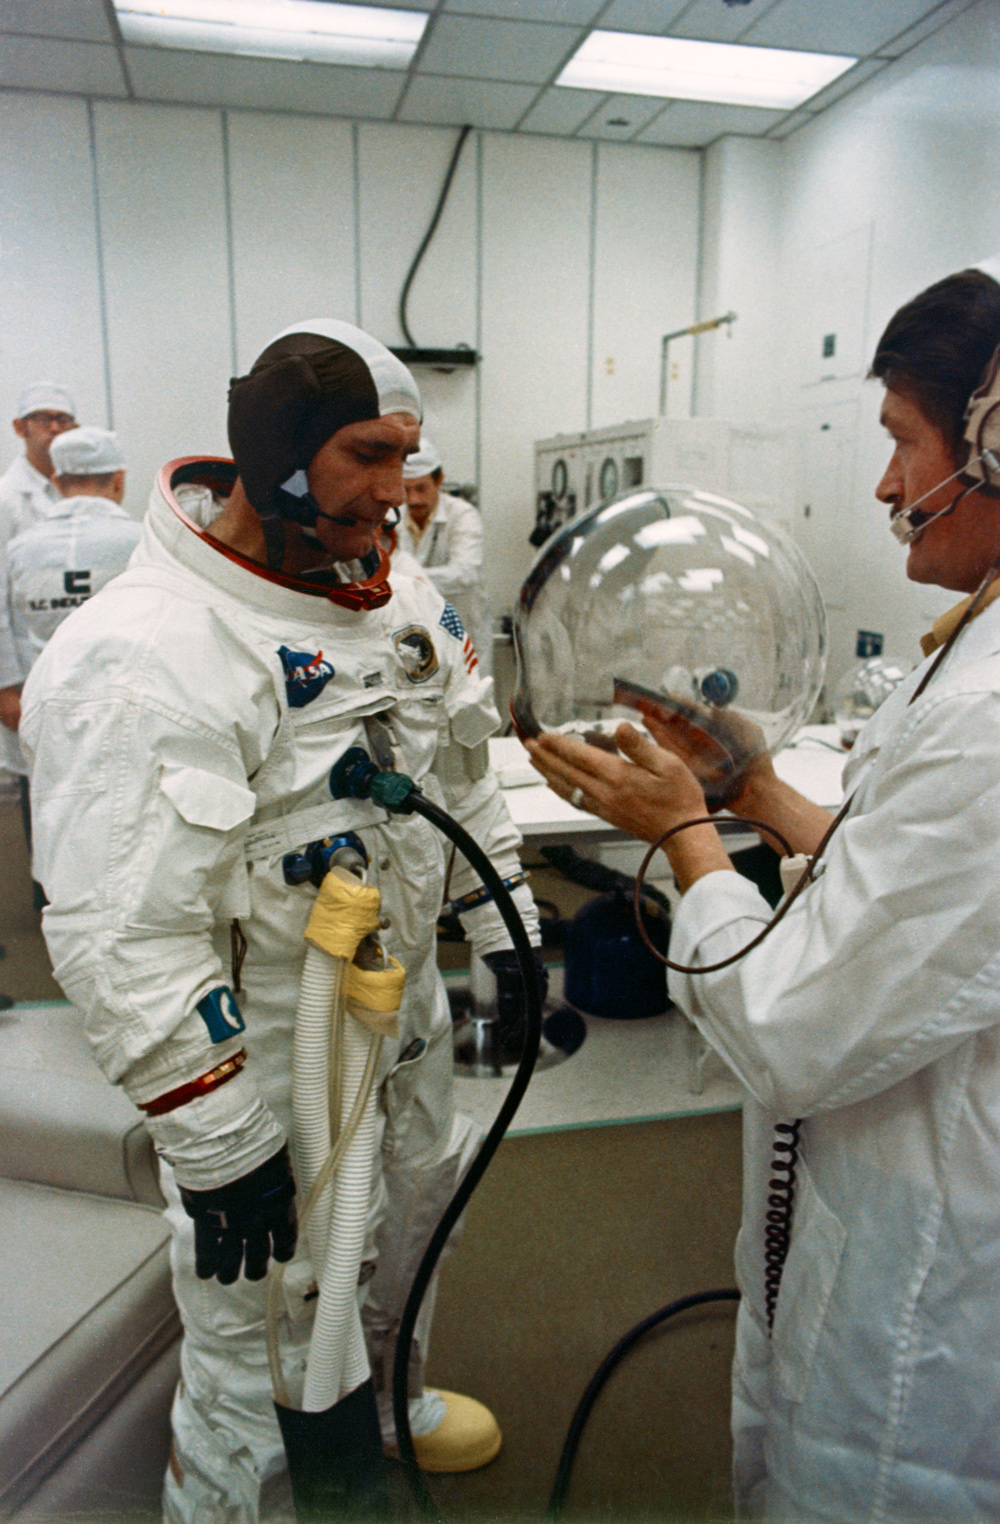 Astronaut putting on his helmet